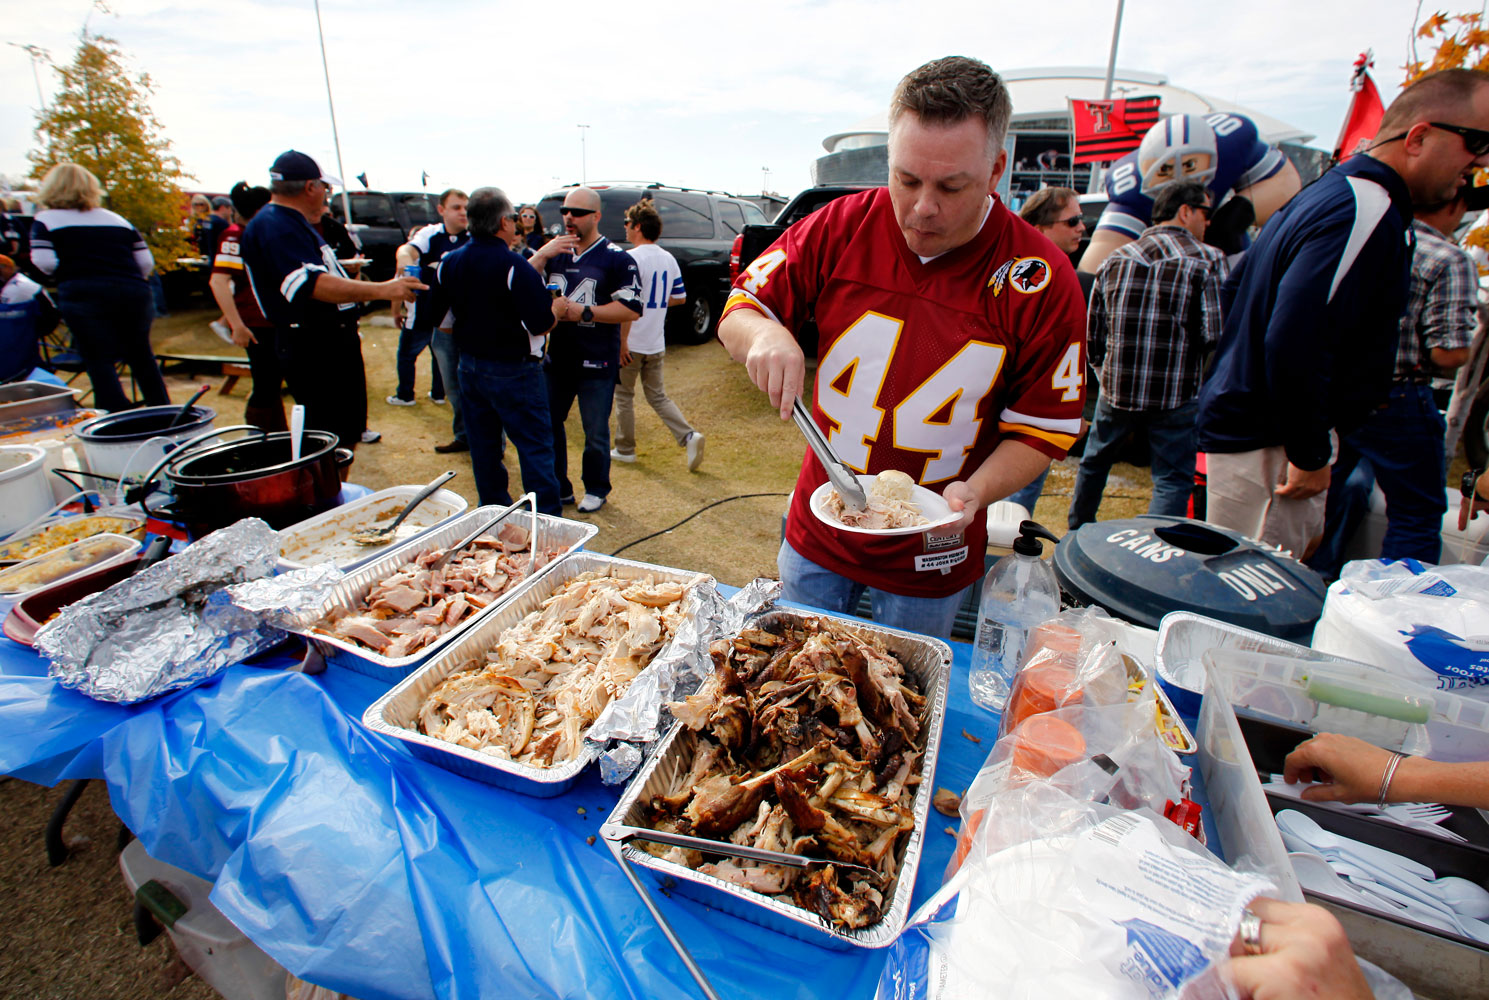 Will healthy tailgating fly with sports fans?